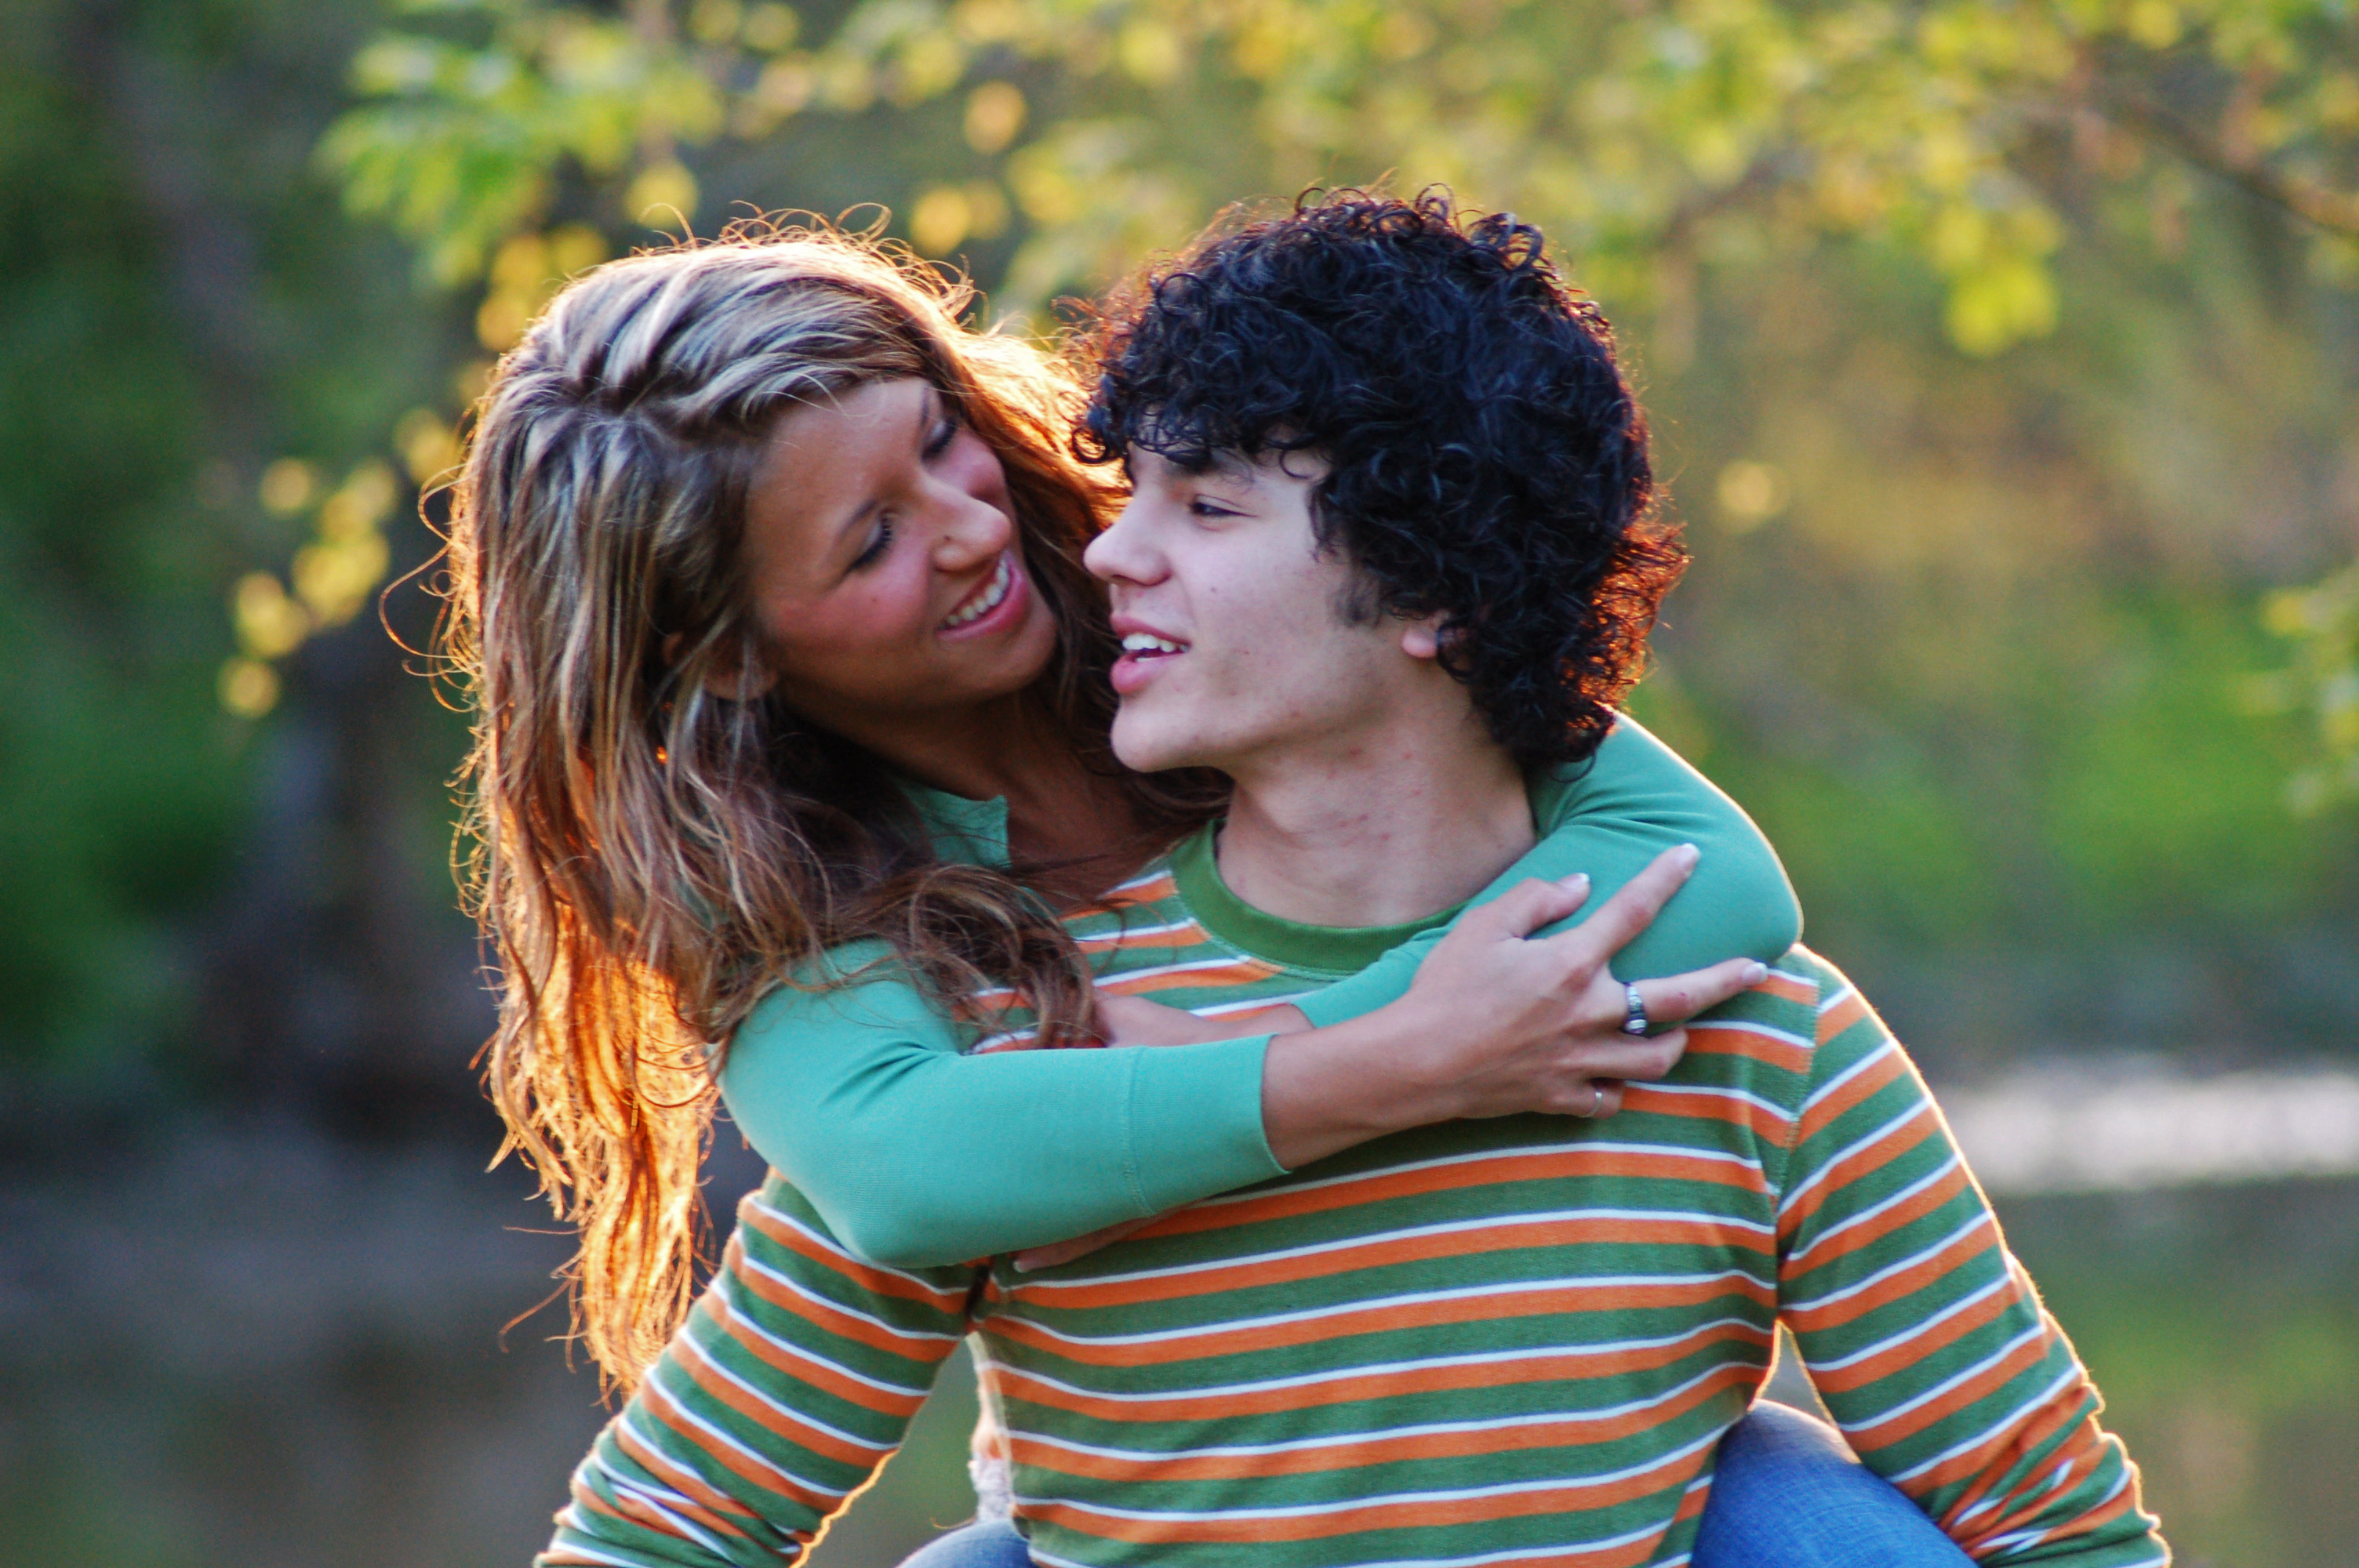 Facts about dating a younger man